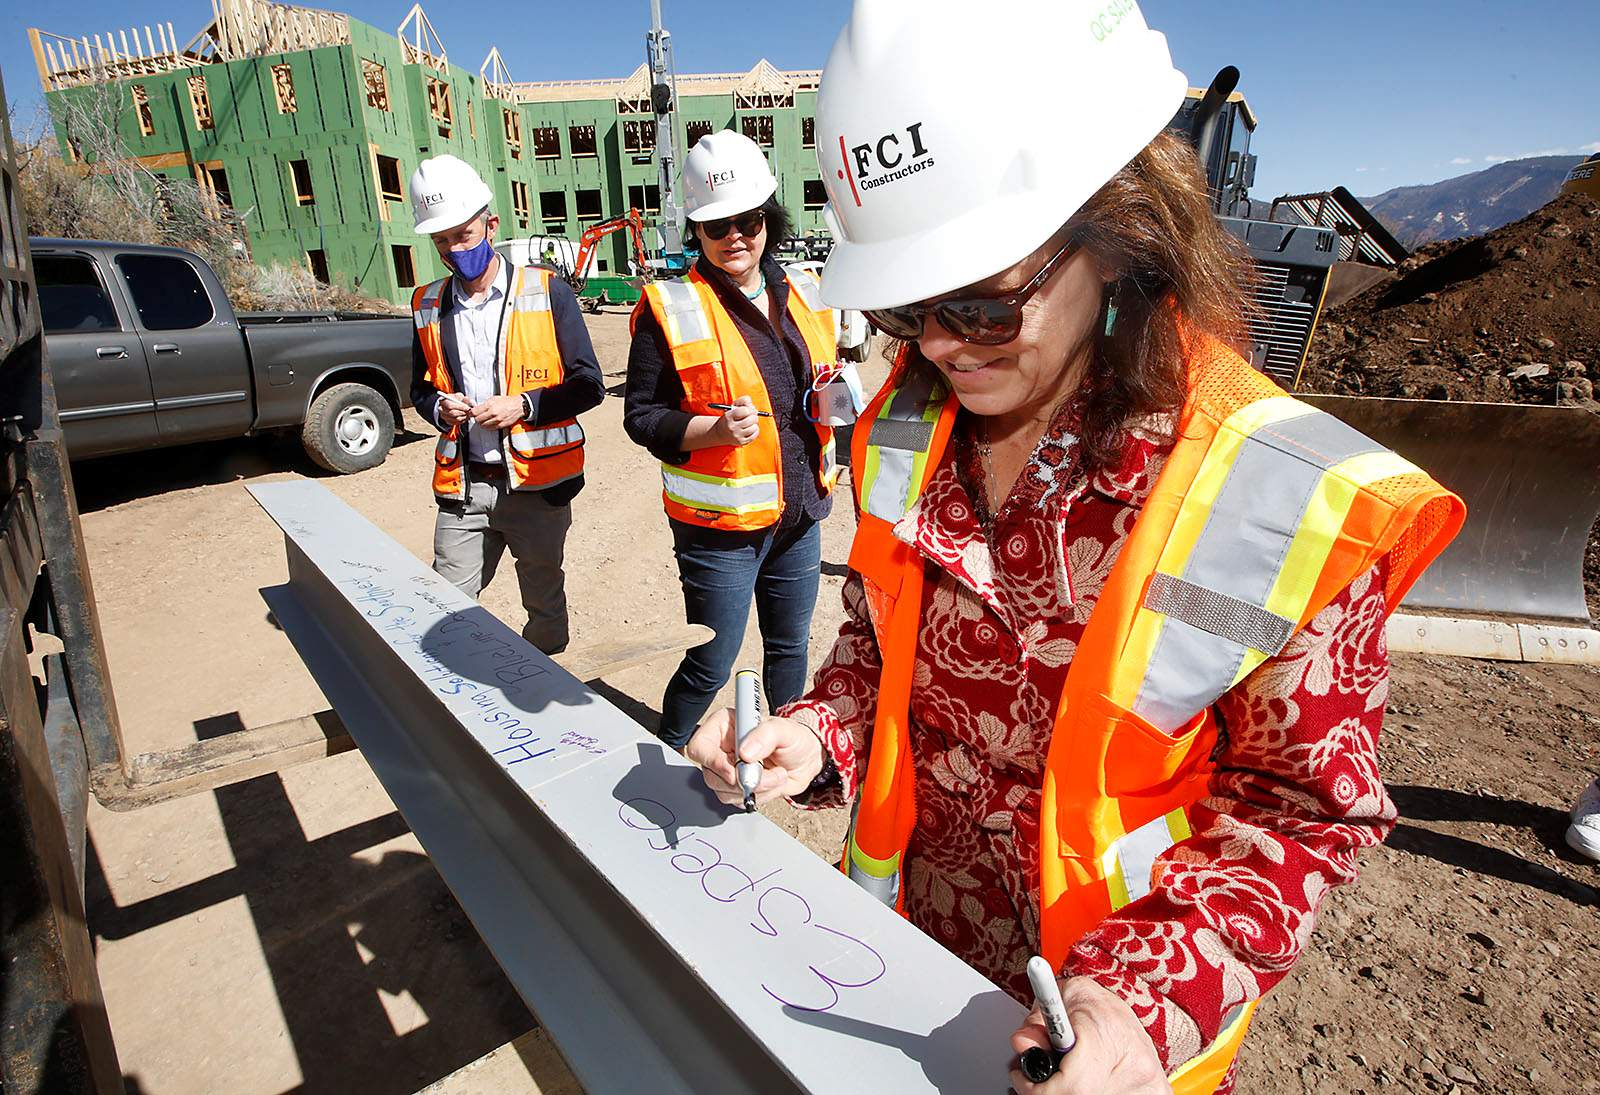 40 low-rent units take shape overlooking downtown Durango